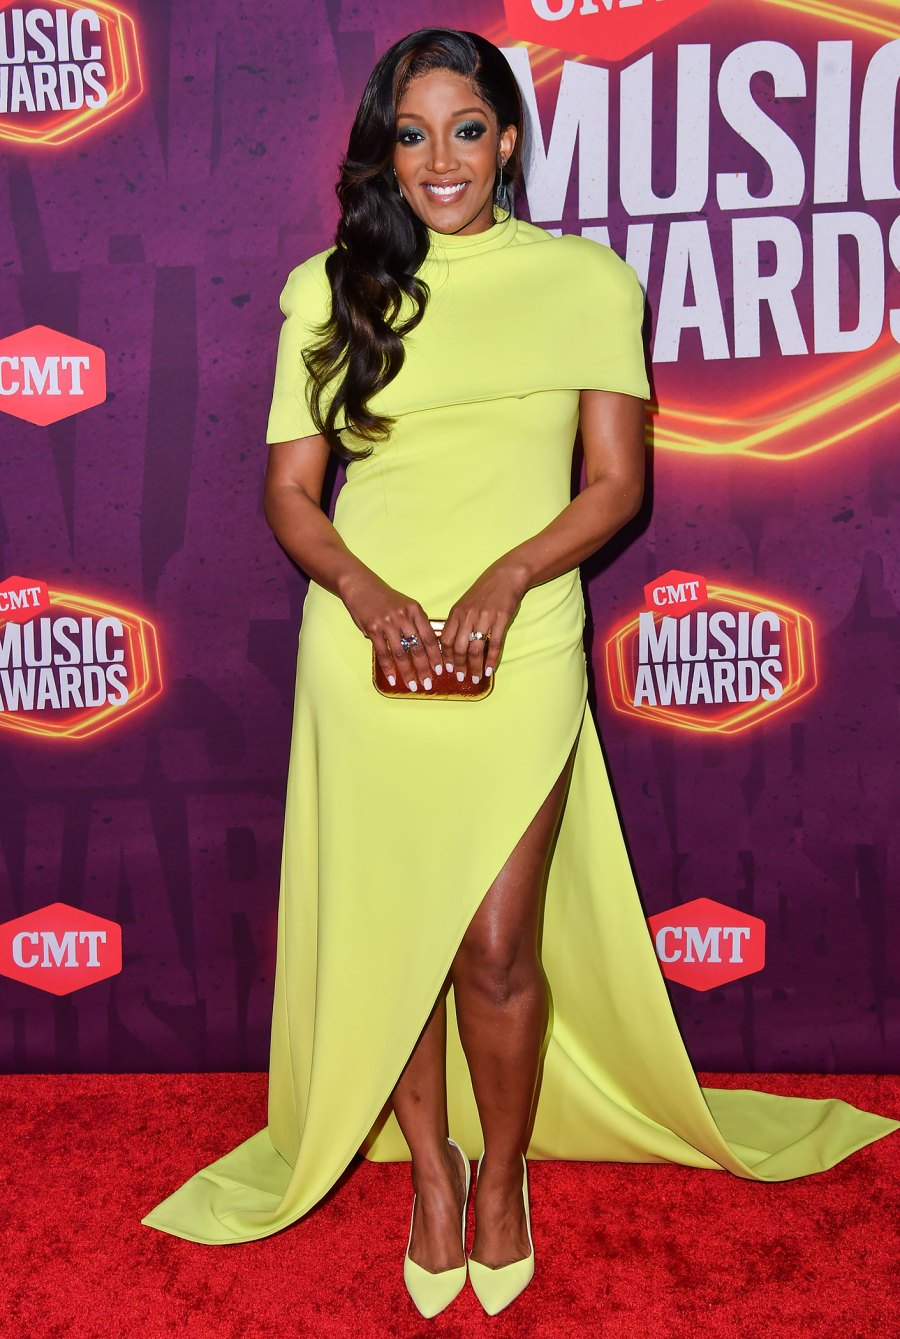 CMT Music Awards 2021 Red Carpet Arrivals - Mickey Guyton